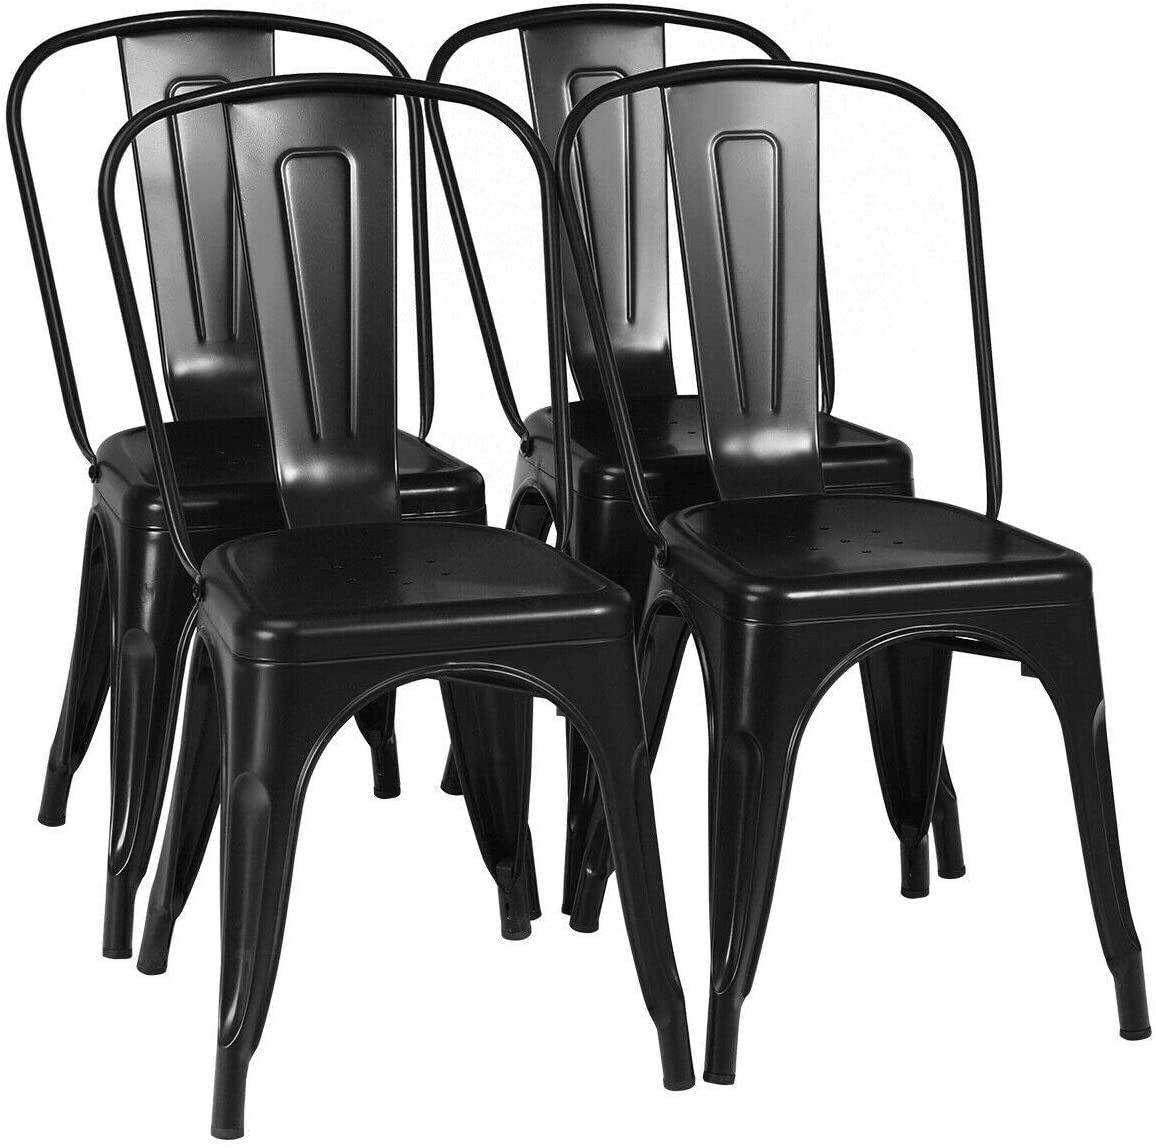 COSTWAY Metal Bar stools Set of 4, with Removable Back, Cafe Side Chairs with Rubber Feet, Stylish and Modern Chairs, for Kitchen, Dining Rooms, and Side Bar(Black,18''